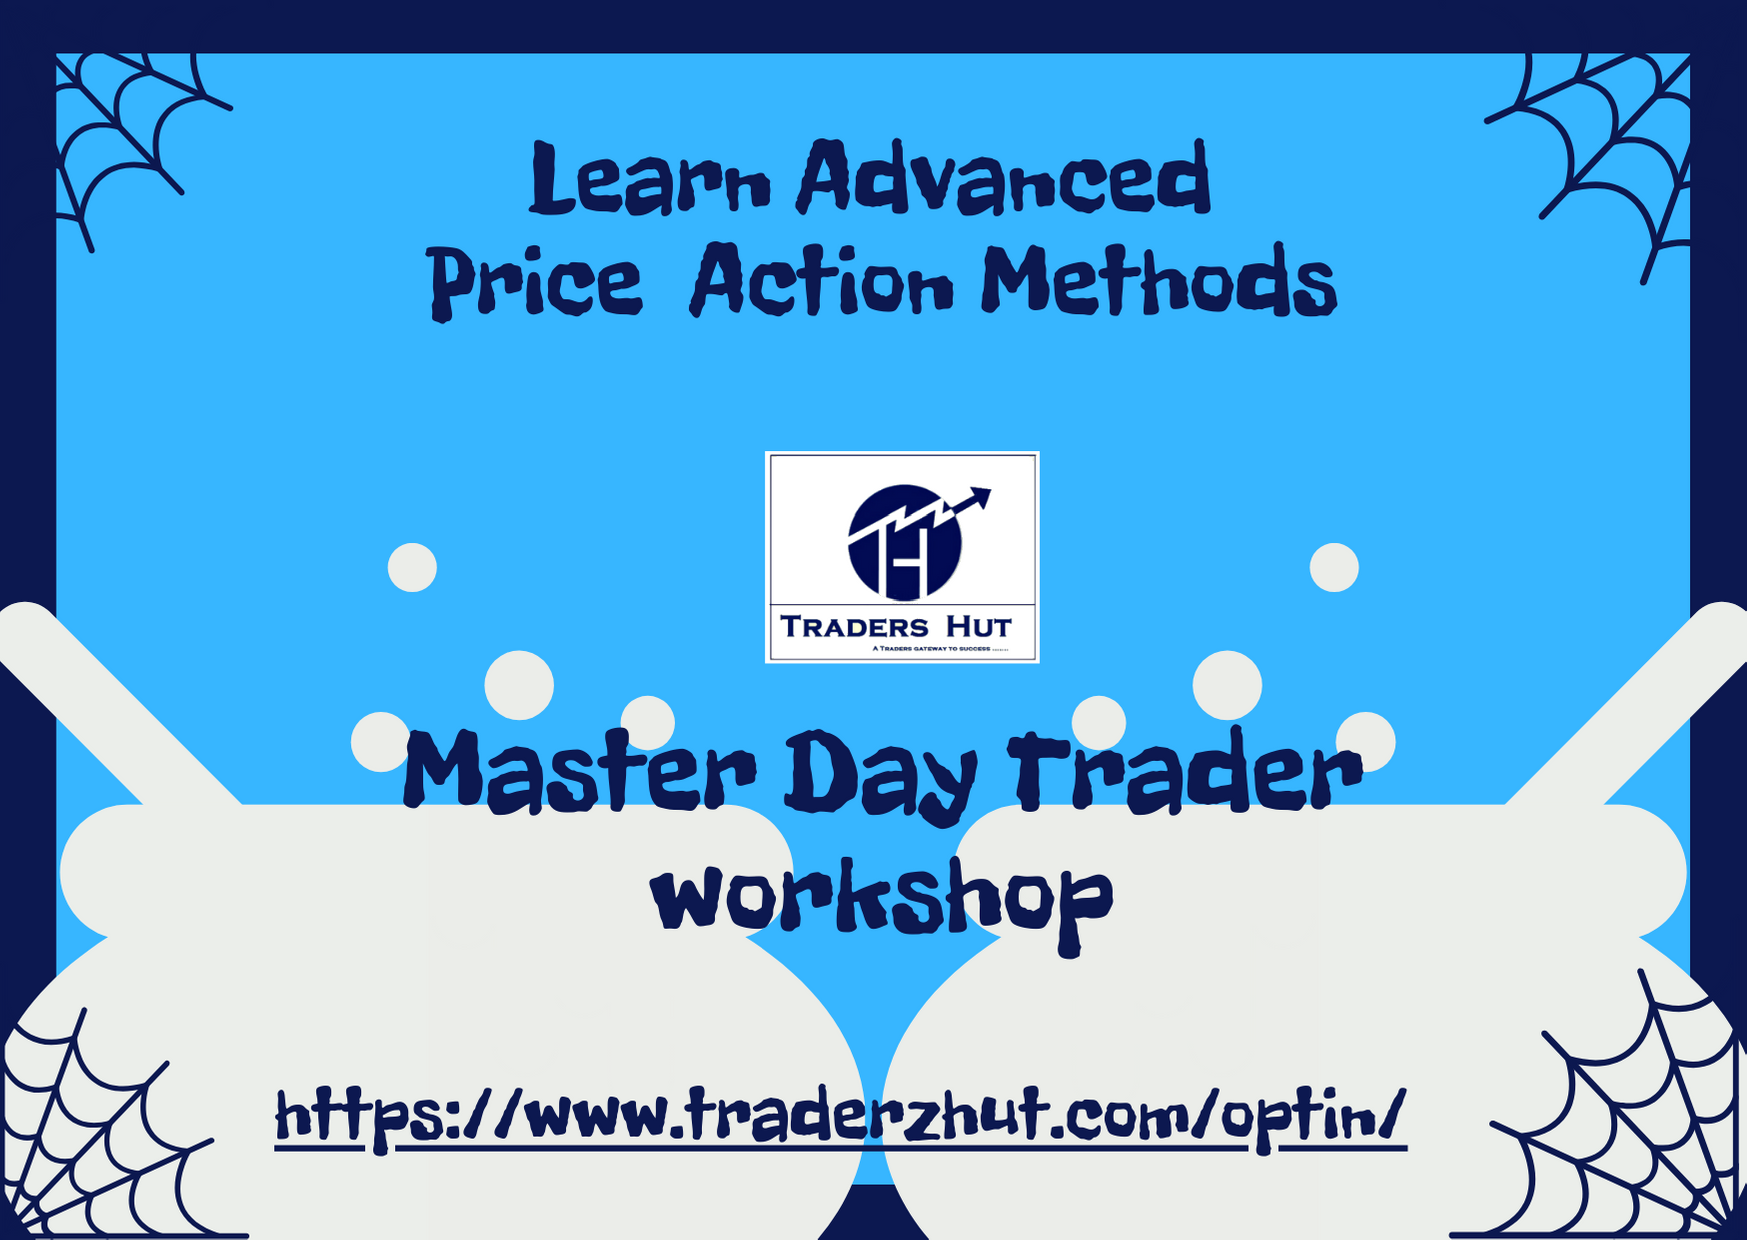 Learn to become Master Day Trader